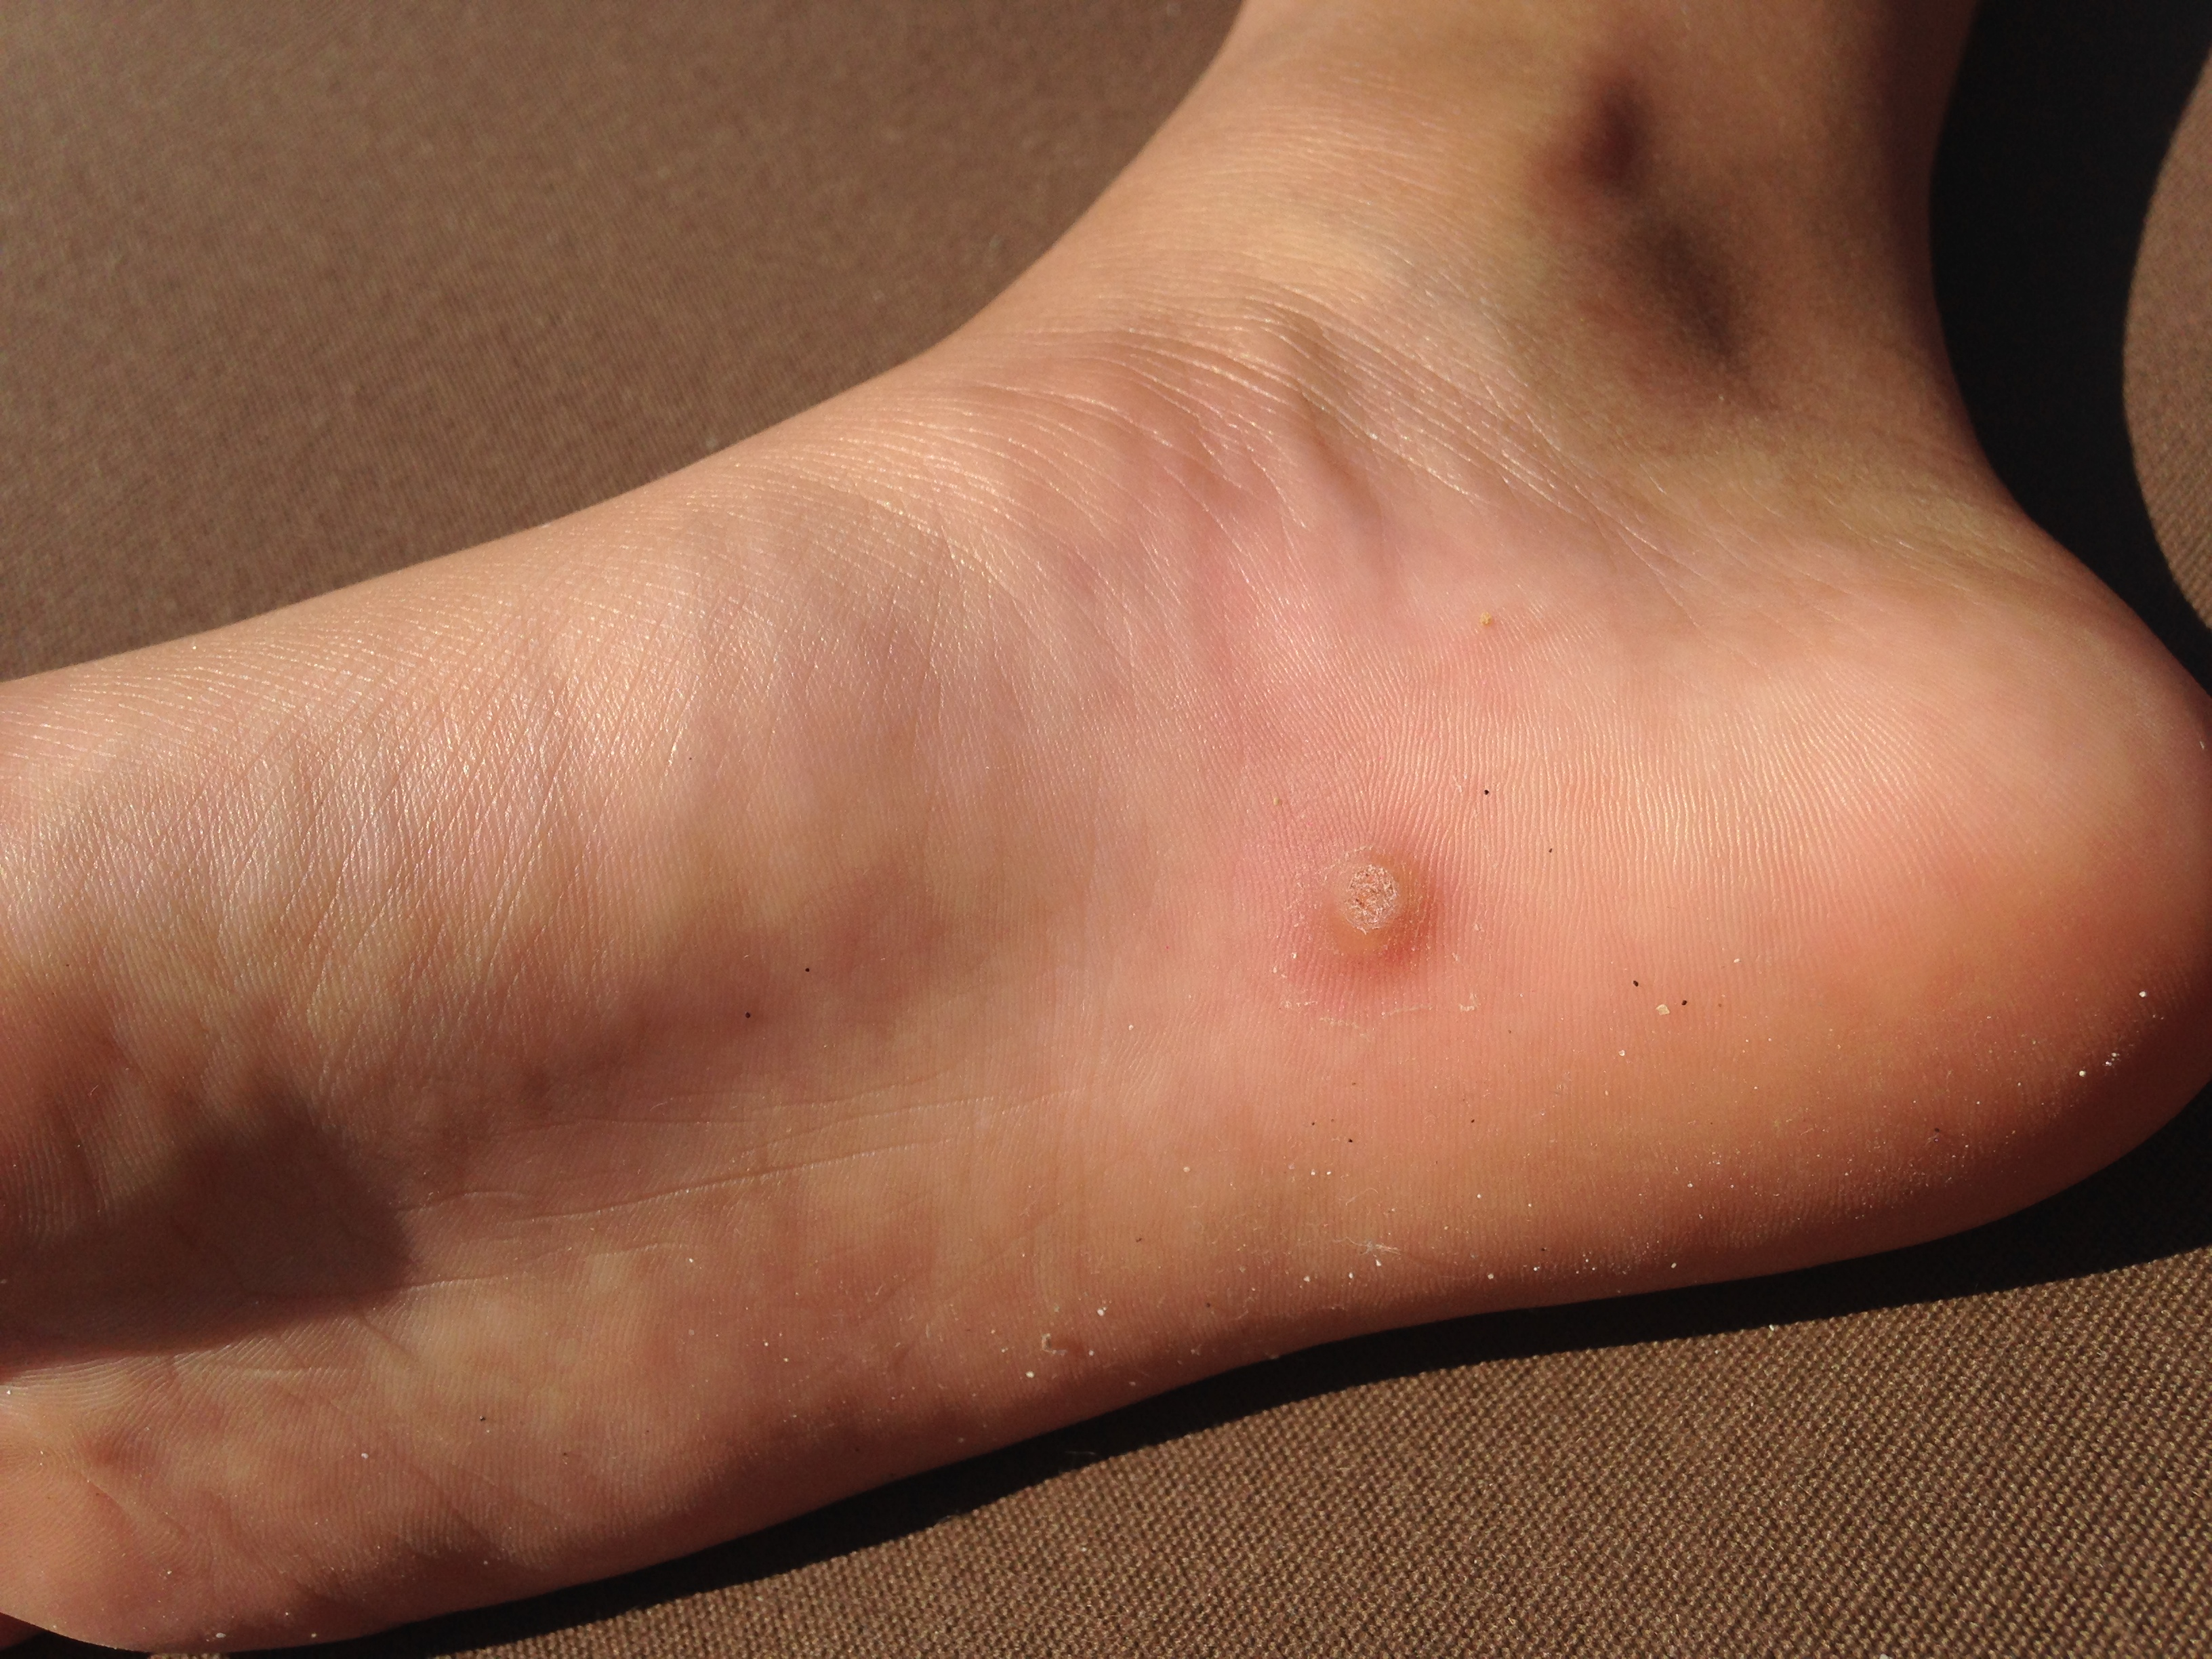 wart on foot 4 year old